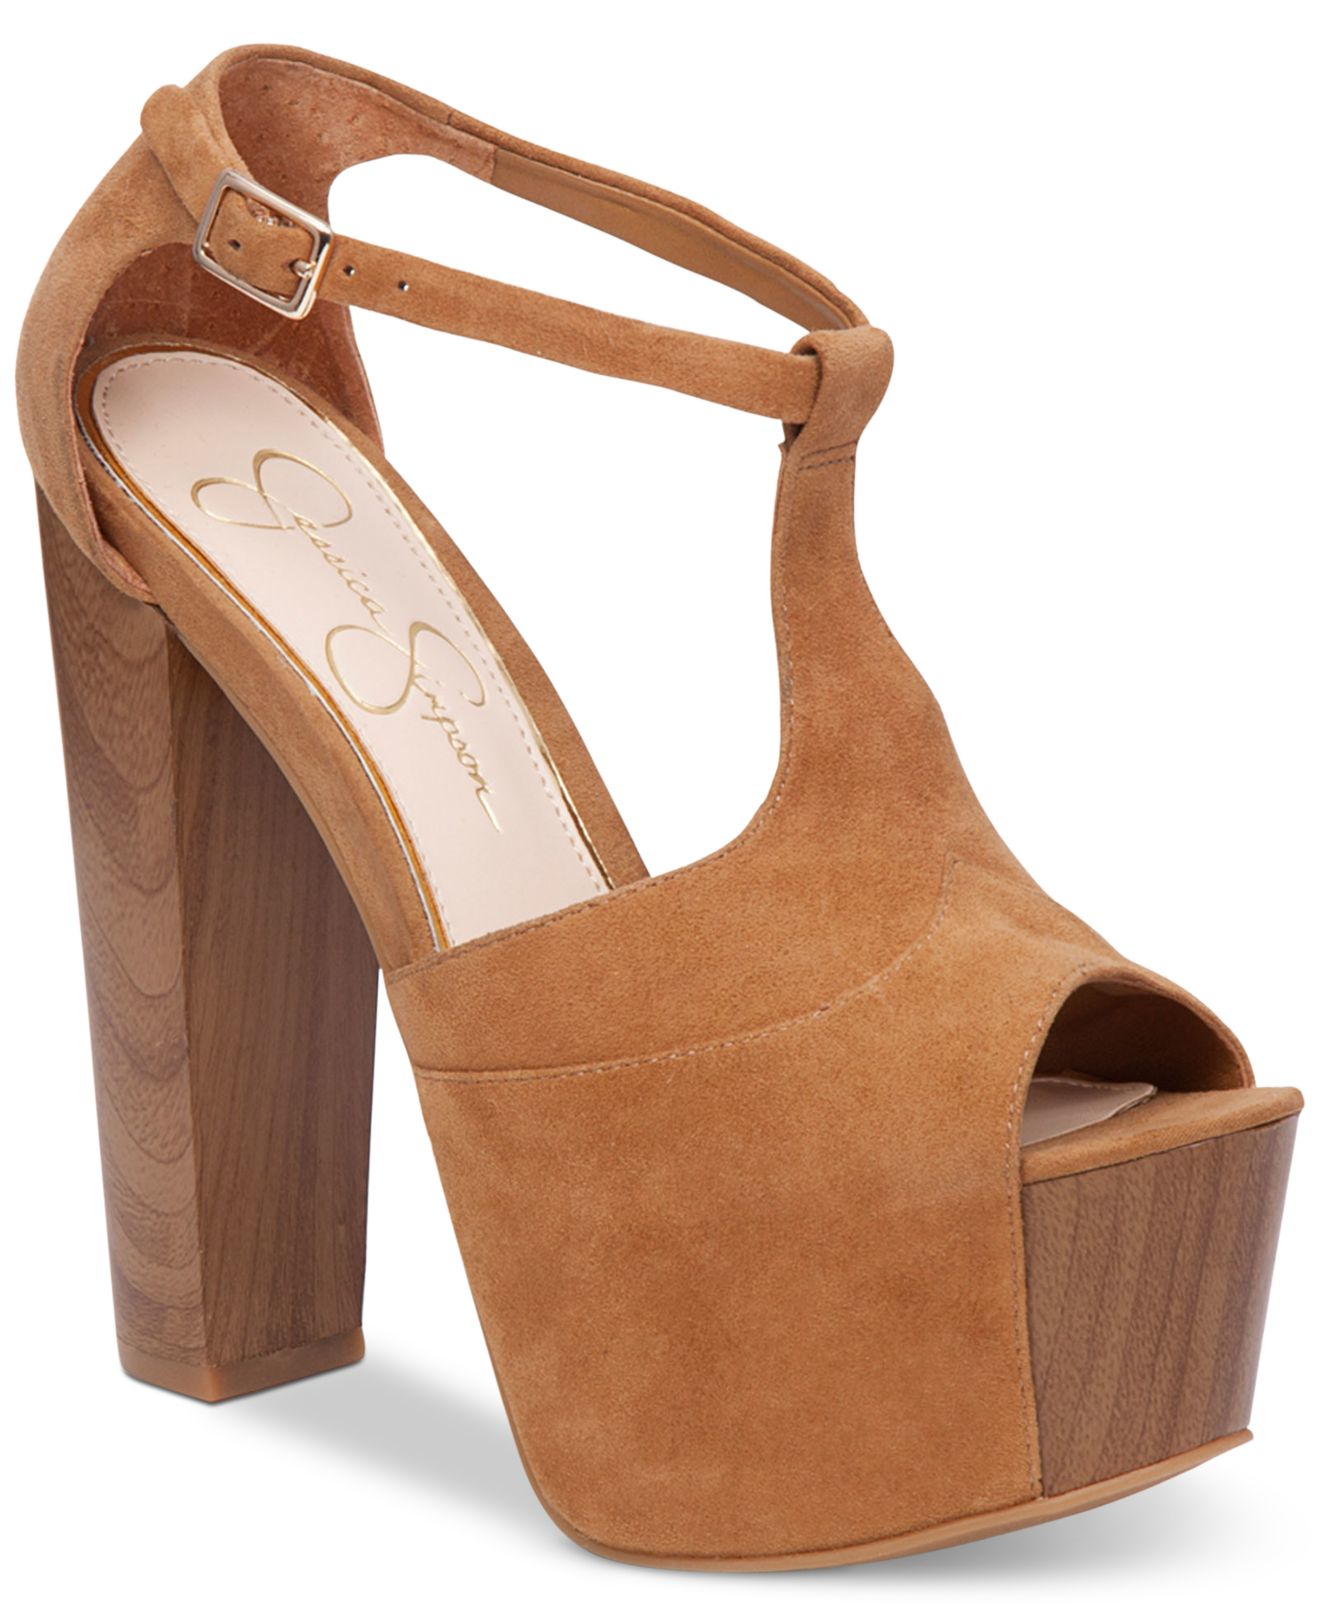 171be73efad4 Lyst - Jessica Simpson Dany T-strap Platform Pumps in Brown